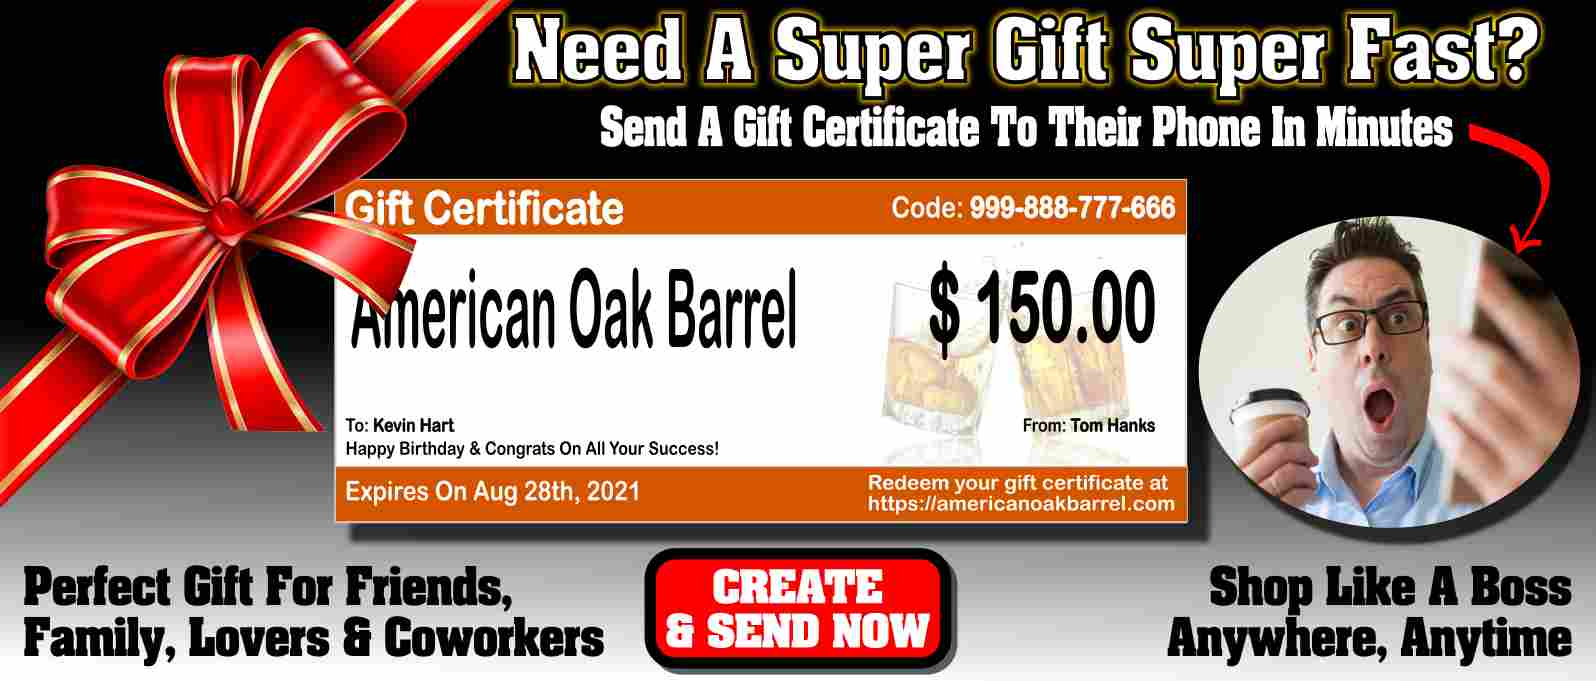 american-oak-barrel-gift-certificates.jpg